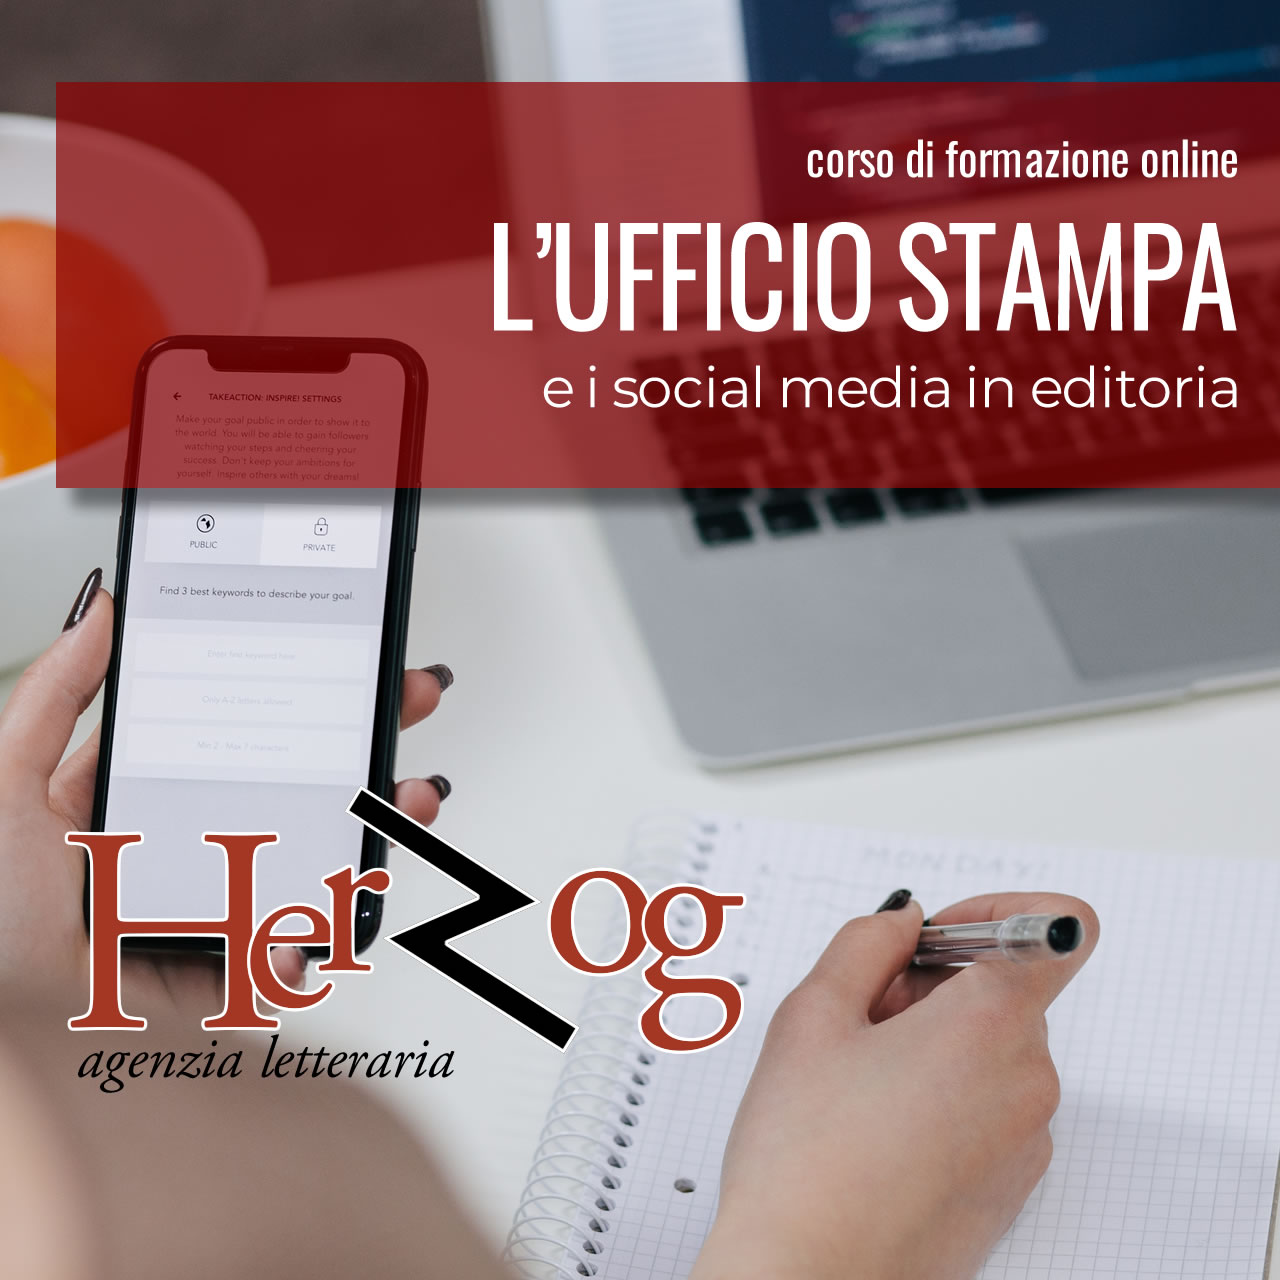 L'UFFICIO STAMPA E I SOCIAL MEDIA IN EDITORIA